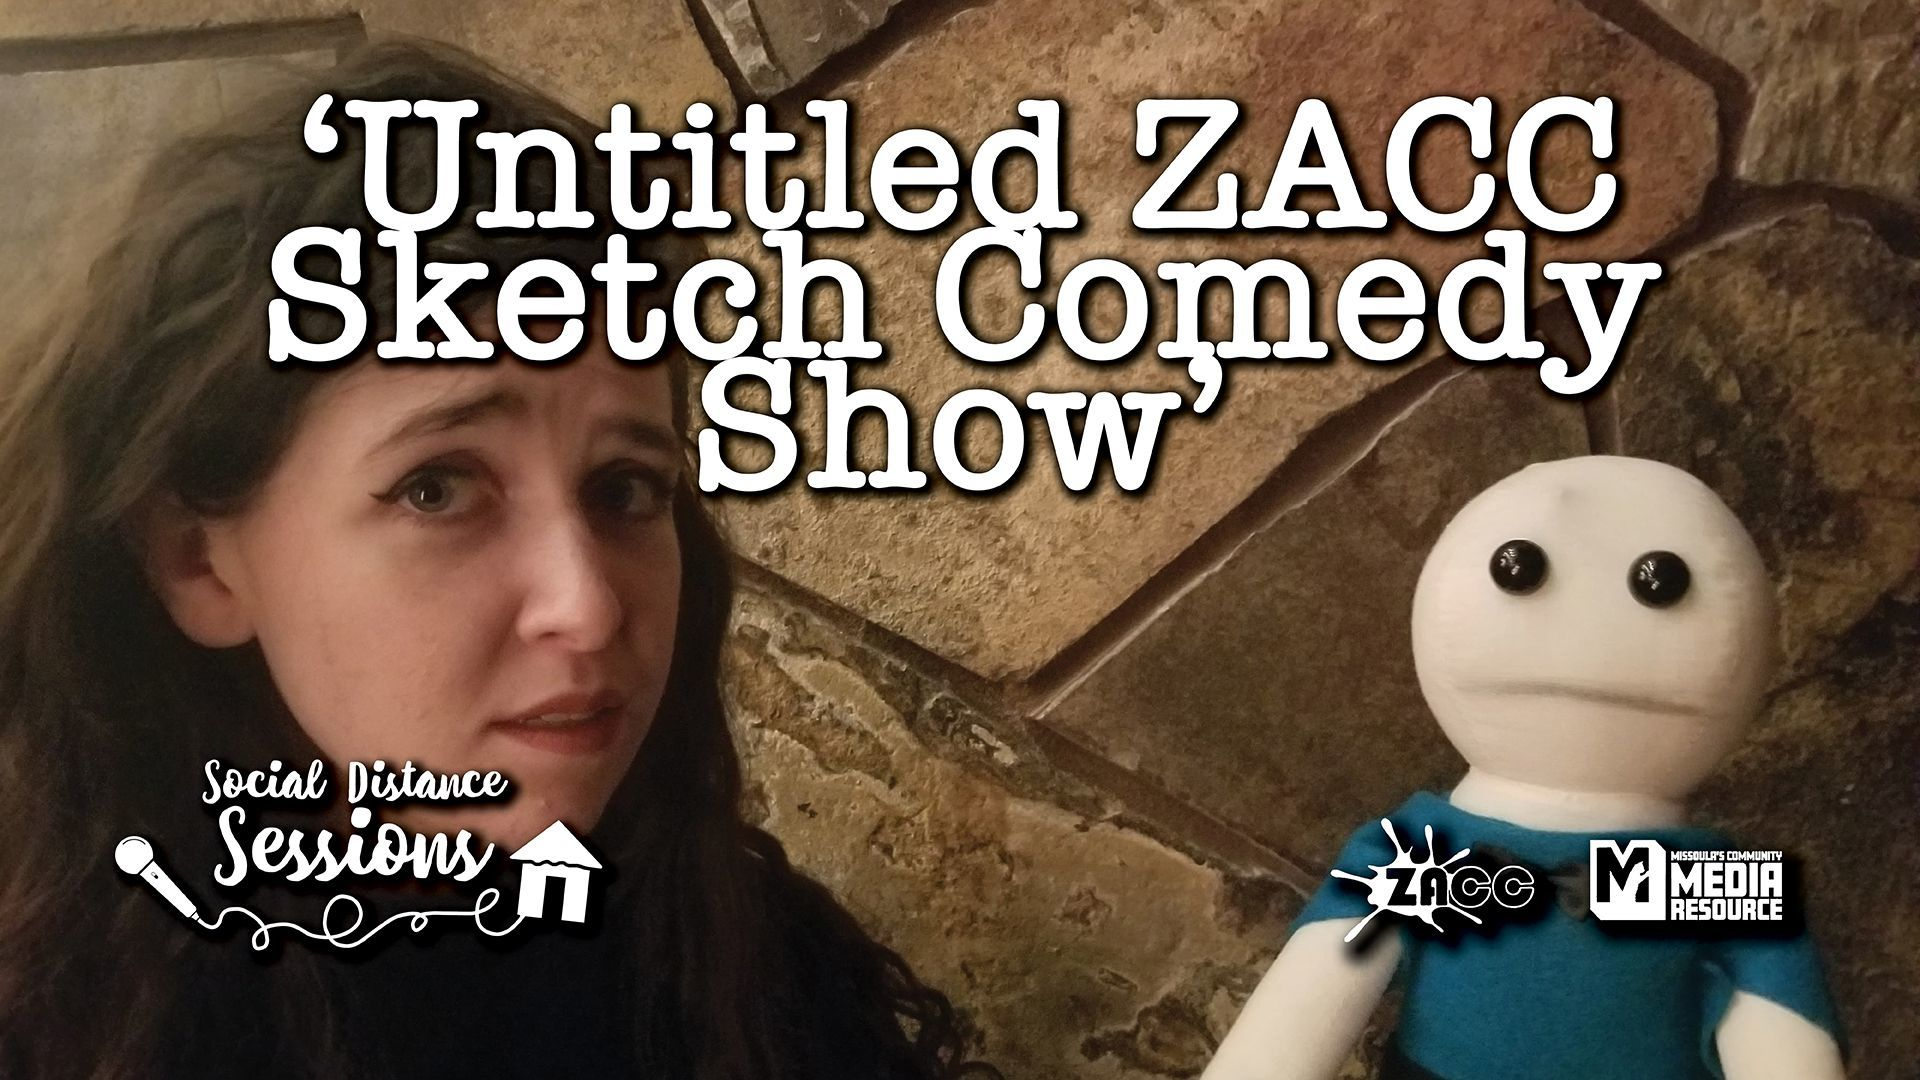 Social Distance Sessions: 'Untitled ZACC Sketch Comedy Show'